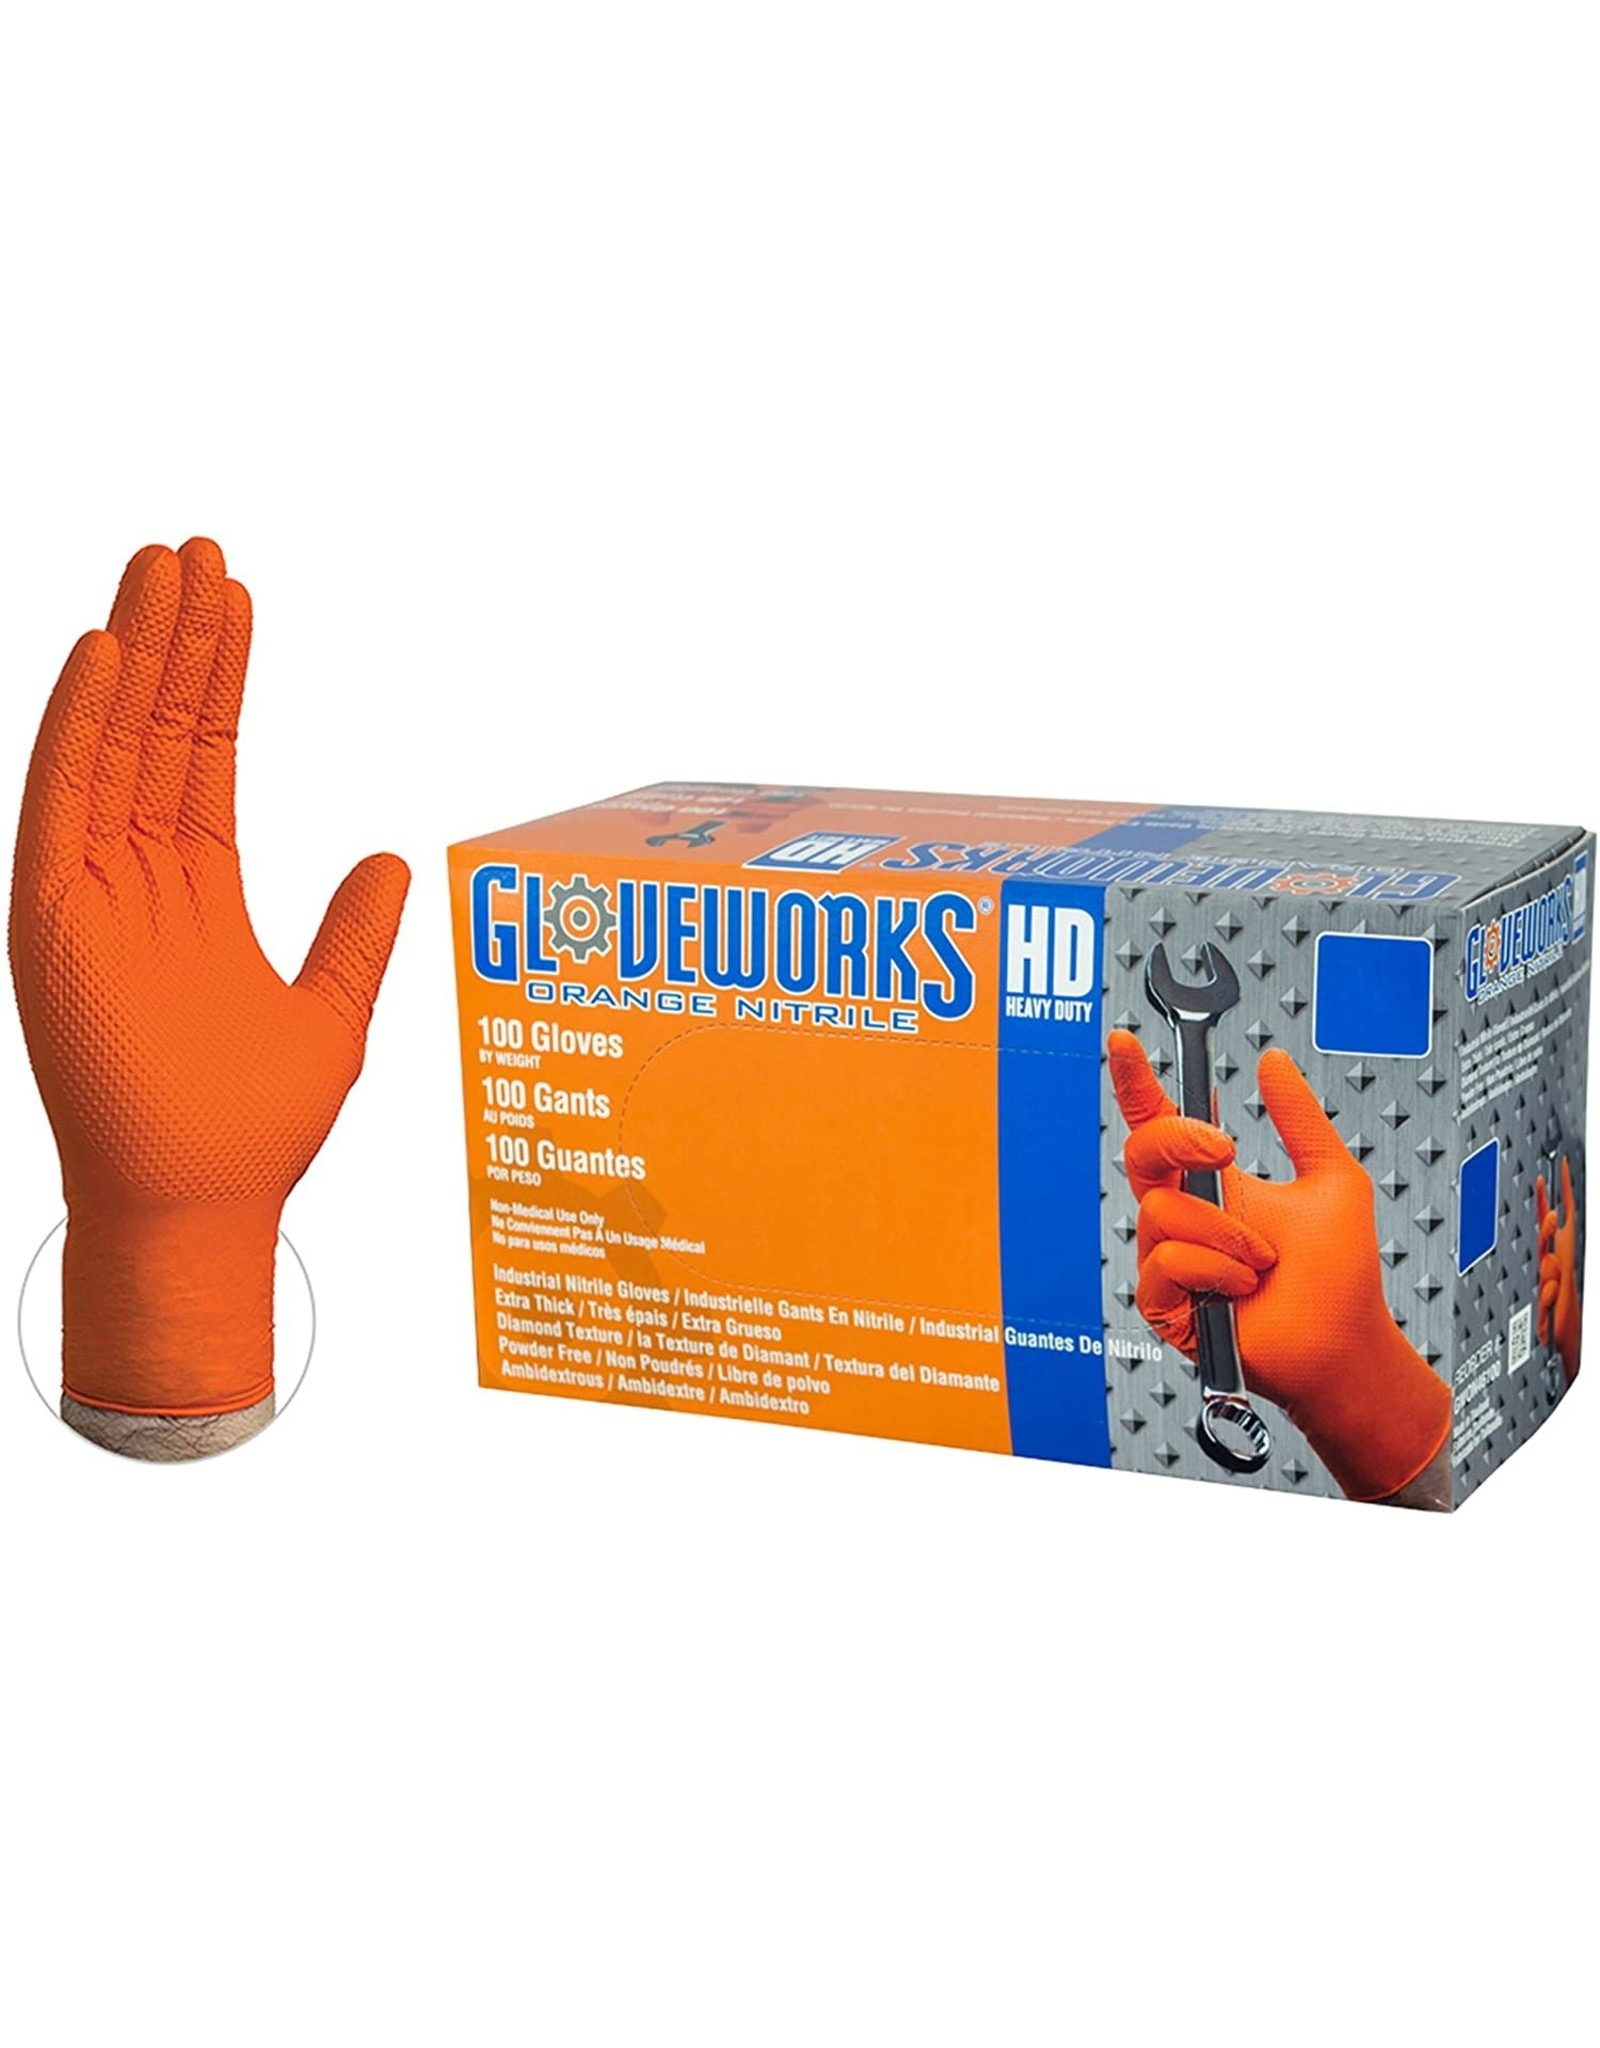 Disposable Heavy-Duty Nitrile Gloves (X-Large)  - 100 pack